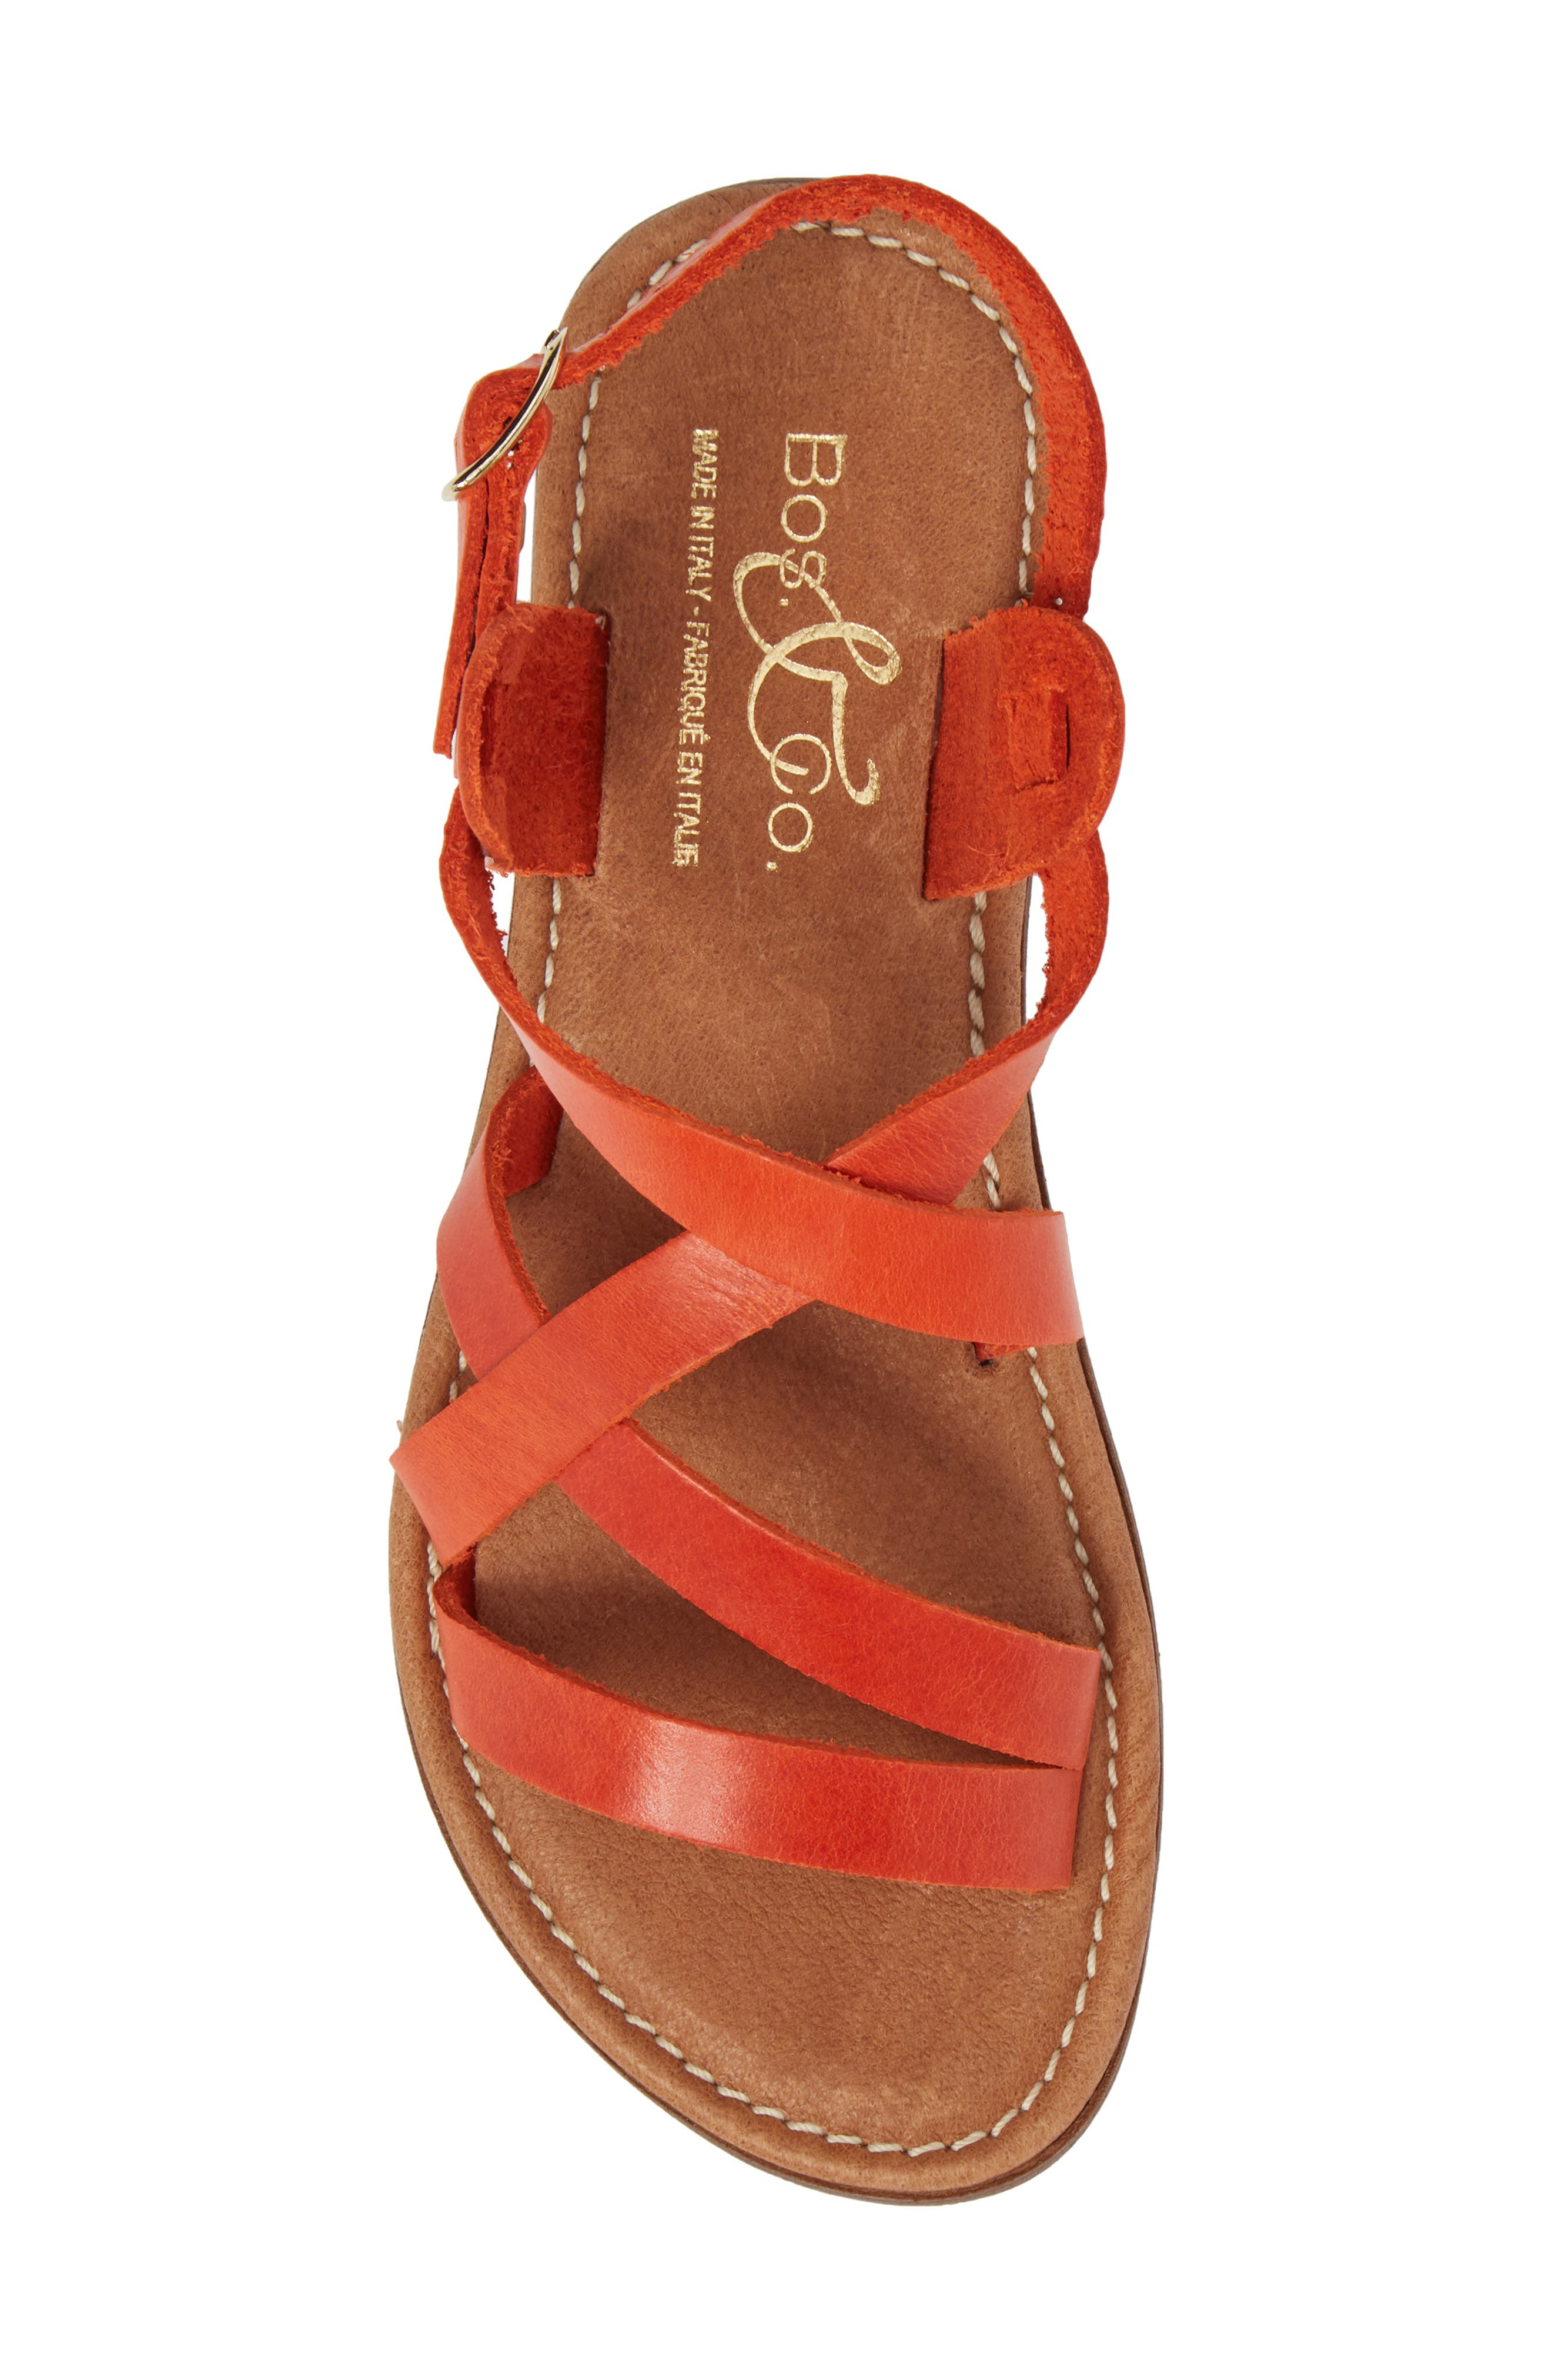 Ionna Sandal,                             Alternate thumbnail 5, color,                             Tangerine Leather